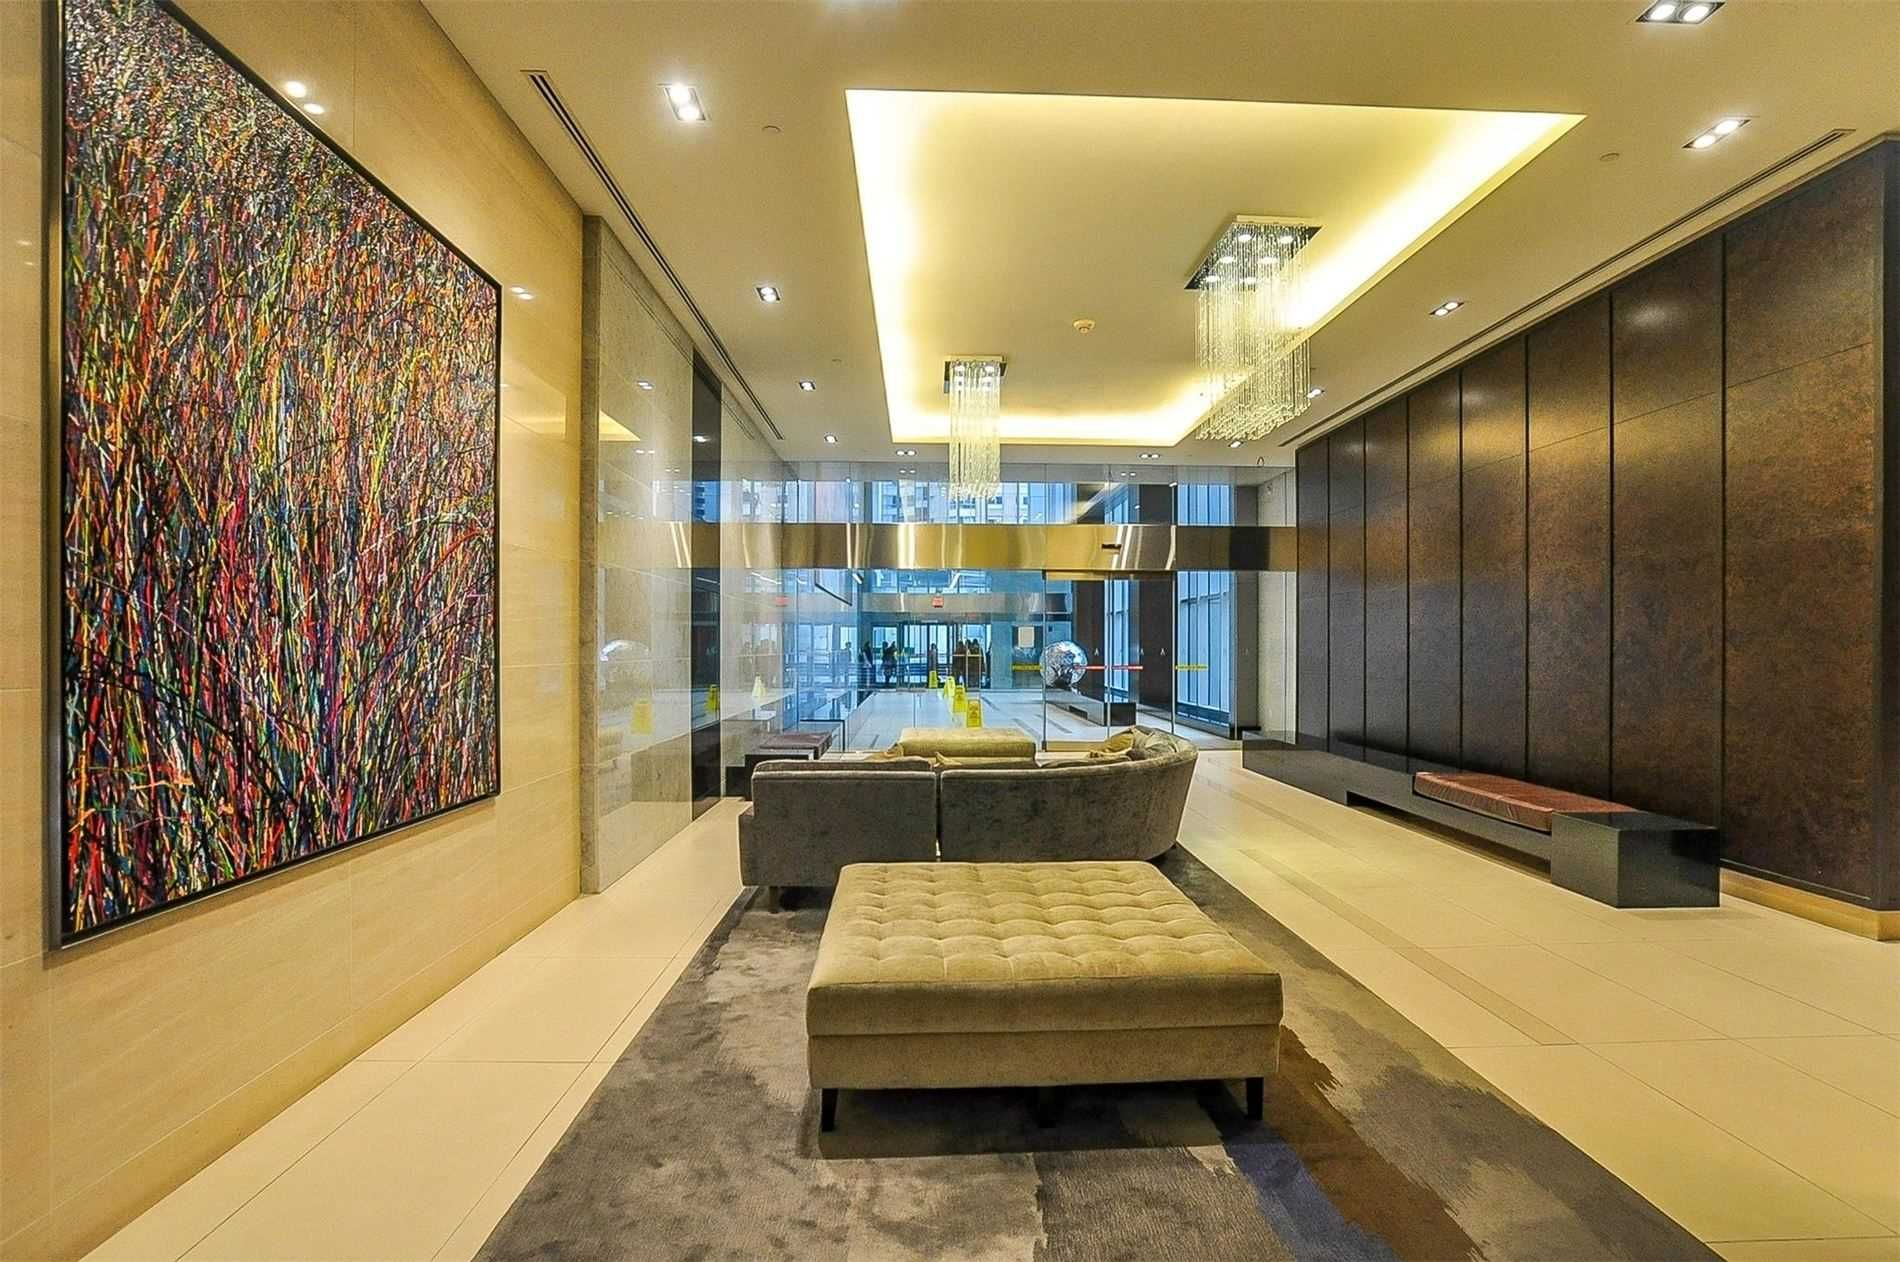 386 Yonge St, unit 3502 for sale in Toronto - image #2